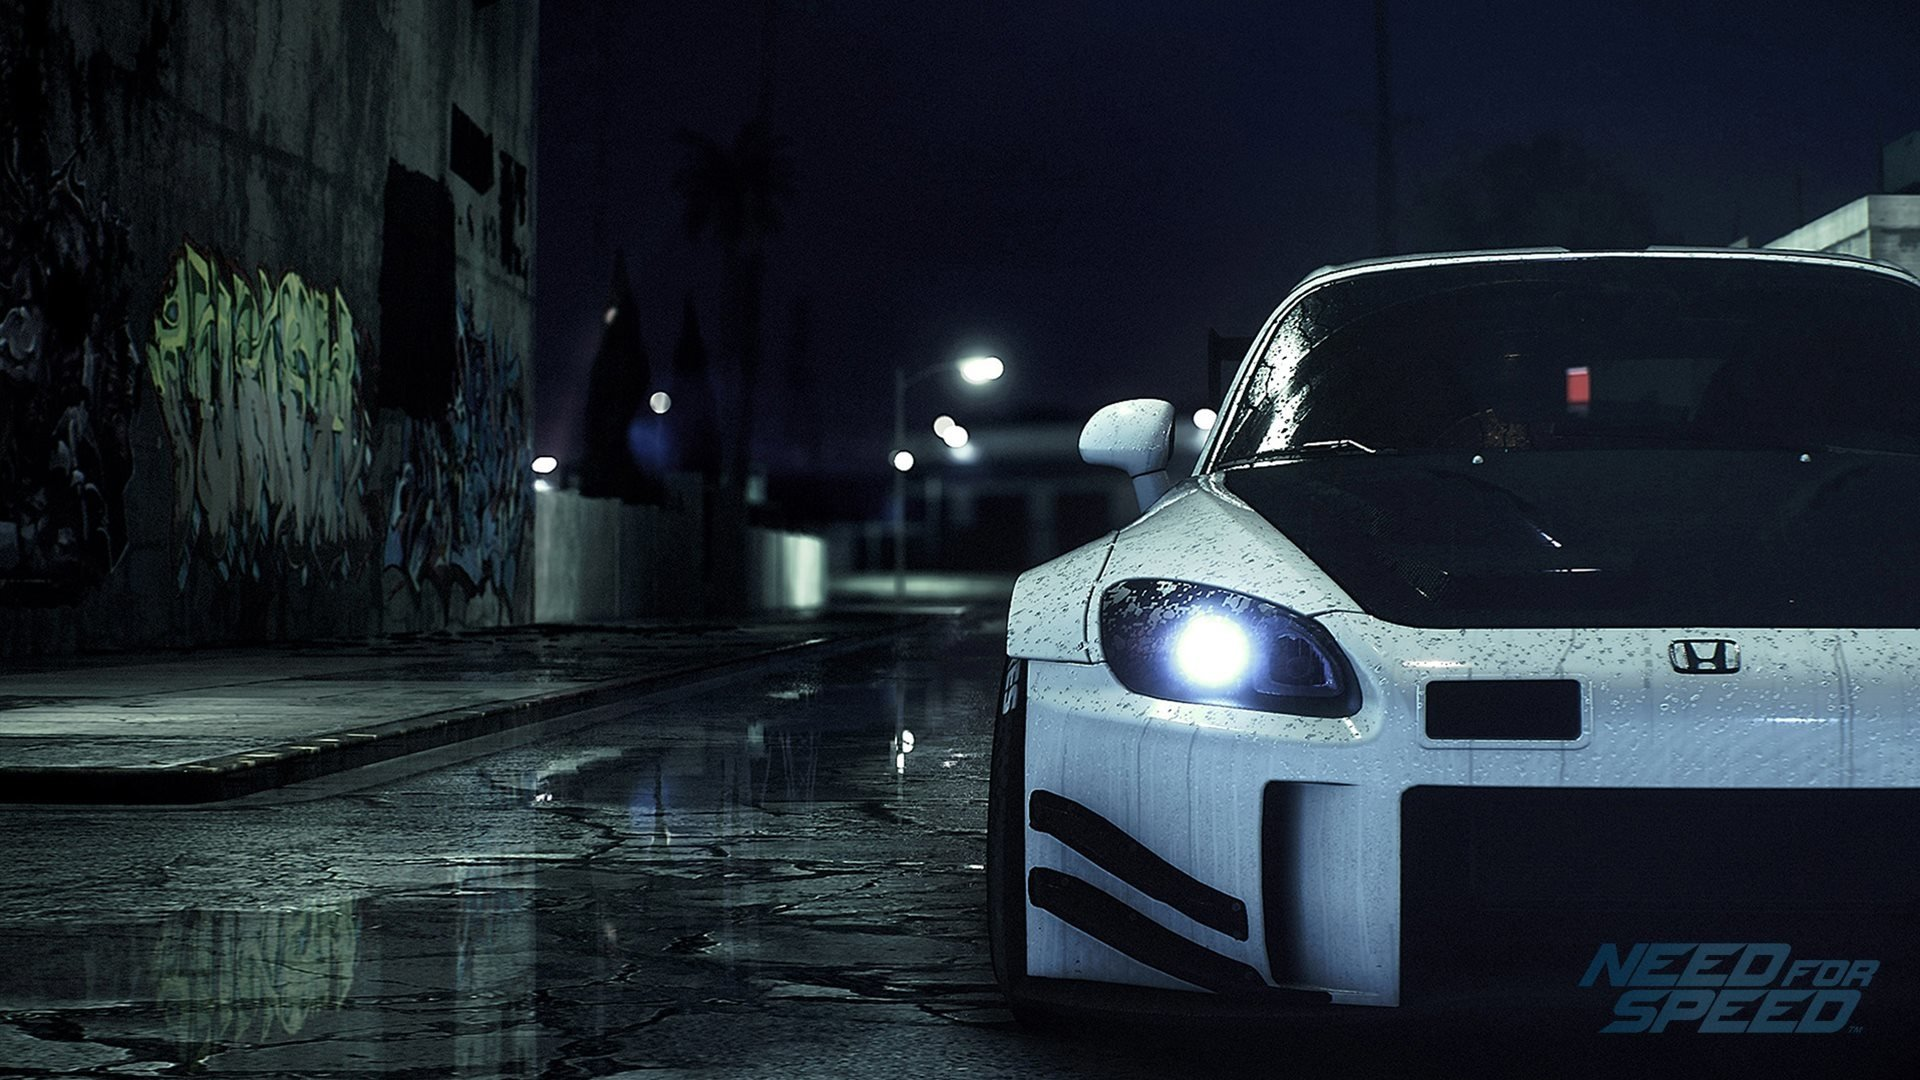 224 Need for Speed 2015 HD Wallpapers Background Images 1920x1080